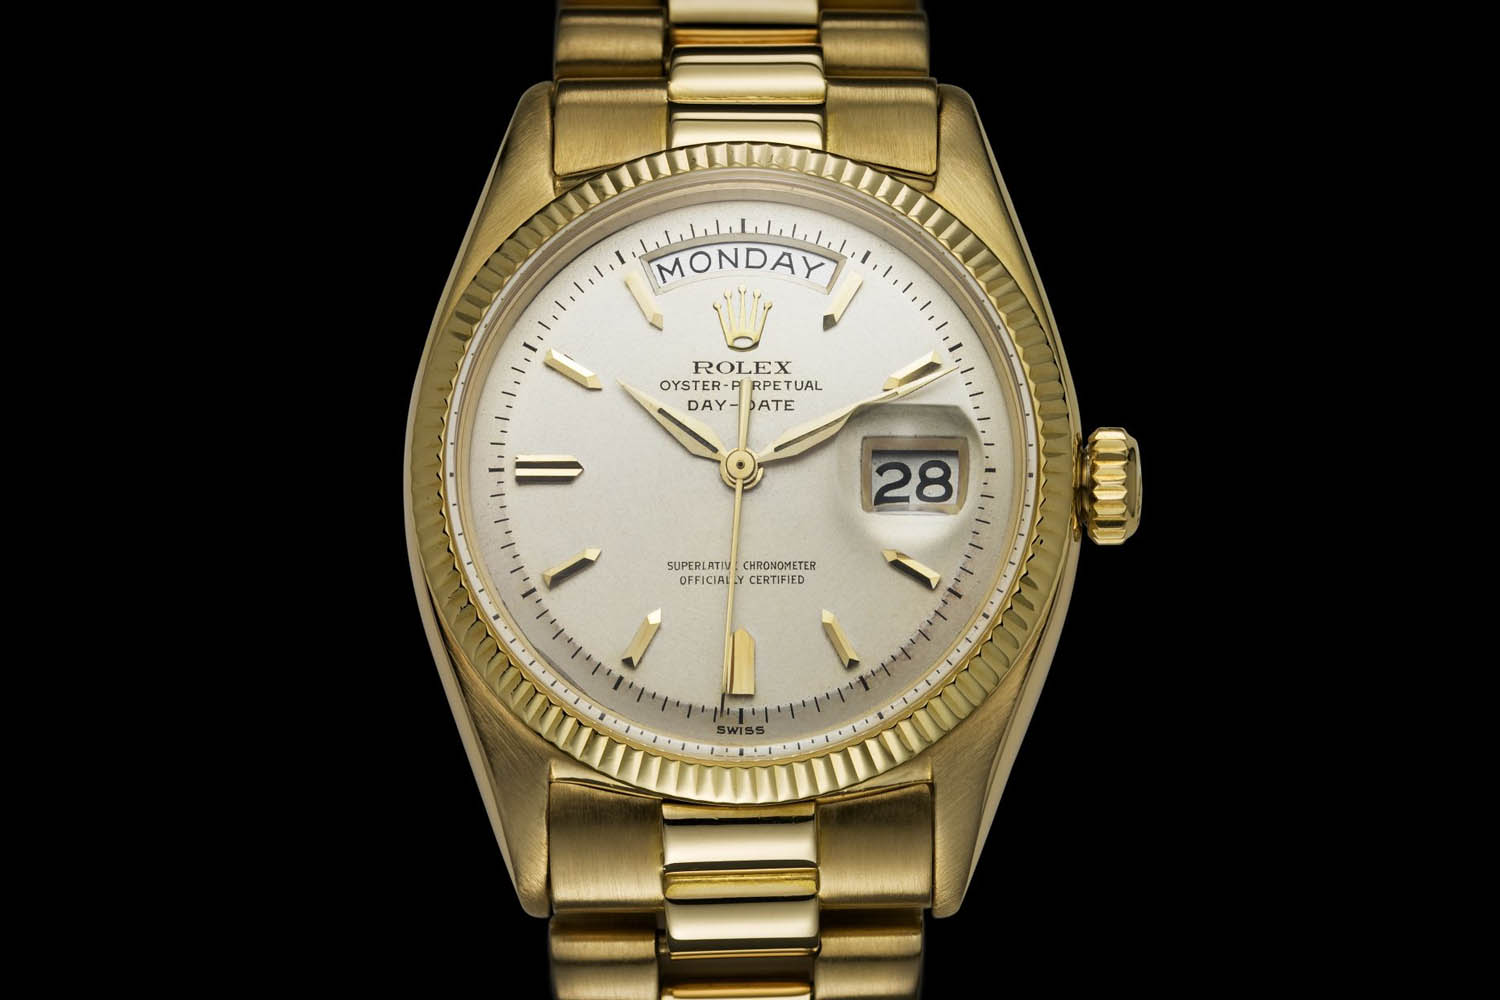 1956 Rolex Day Date 6511, First Edition